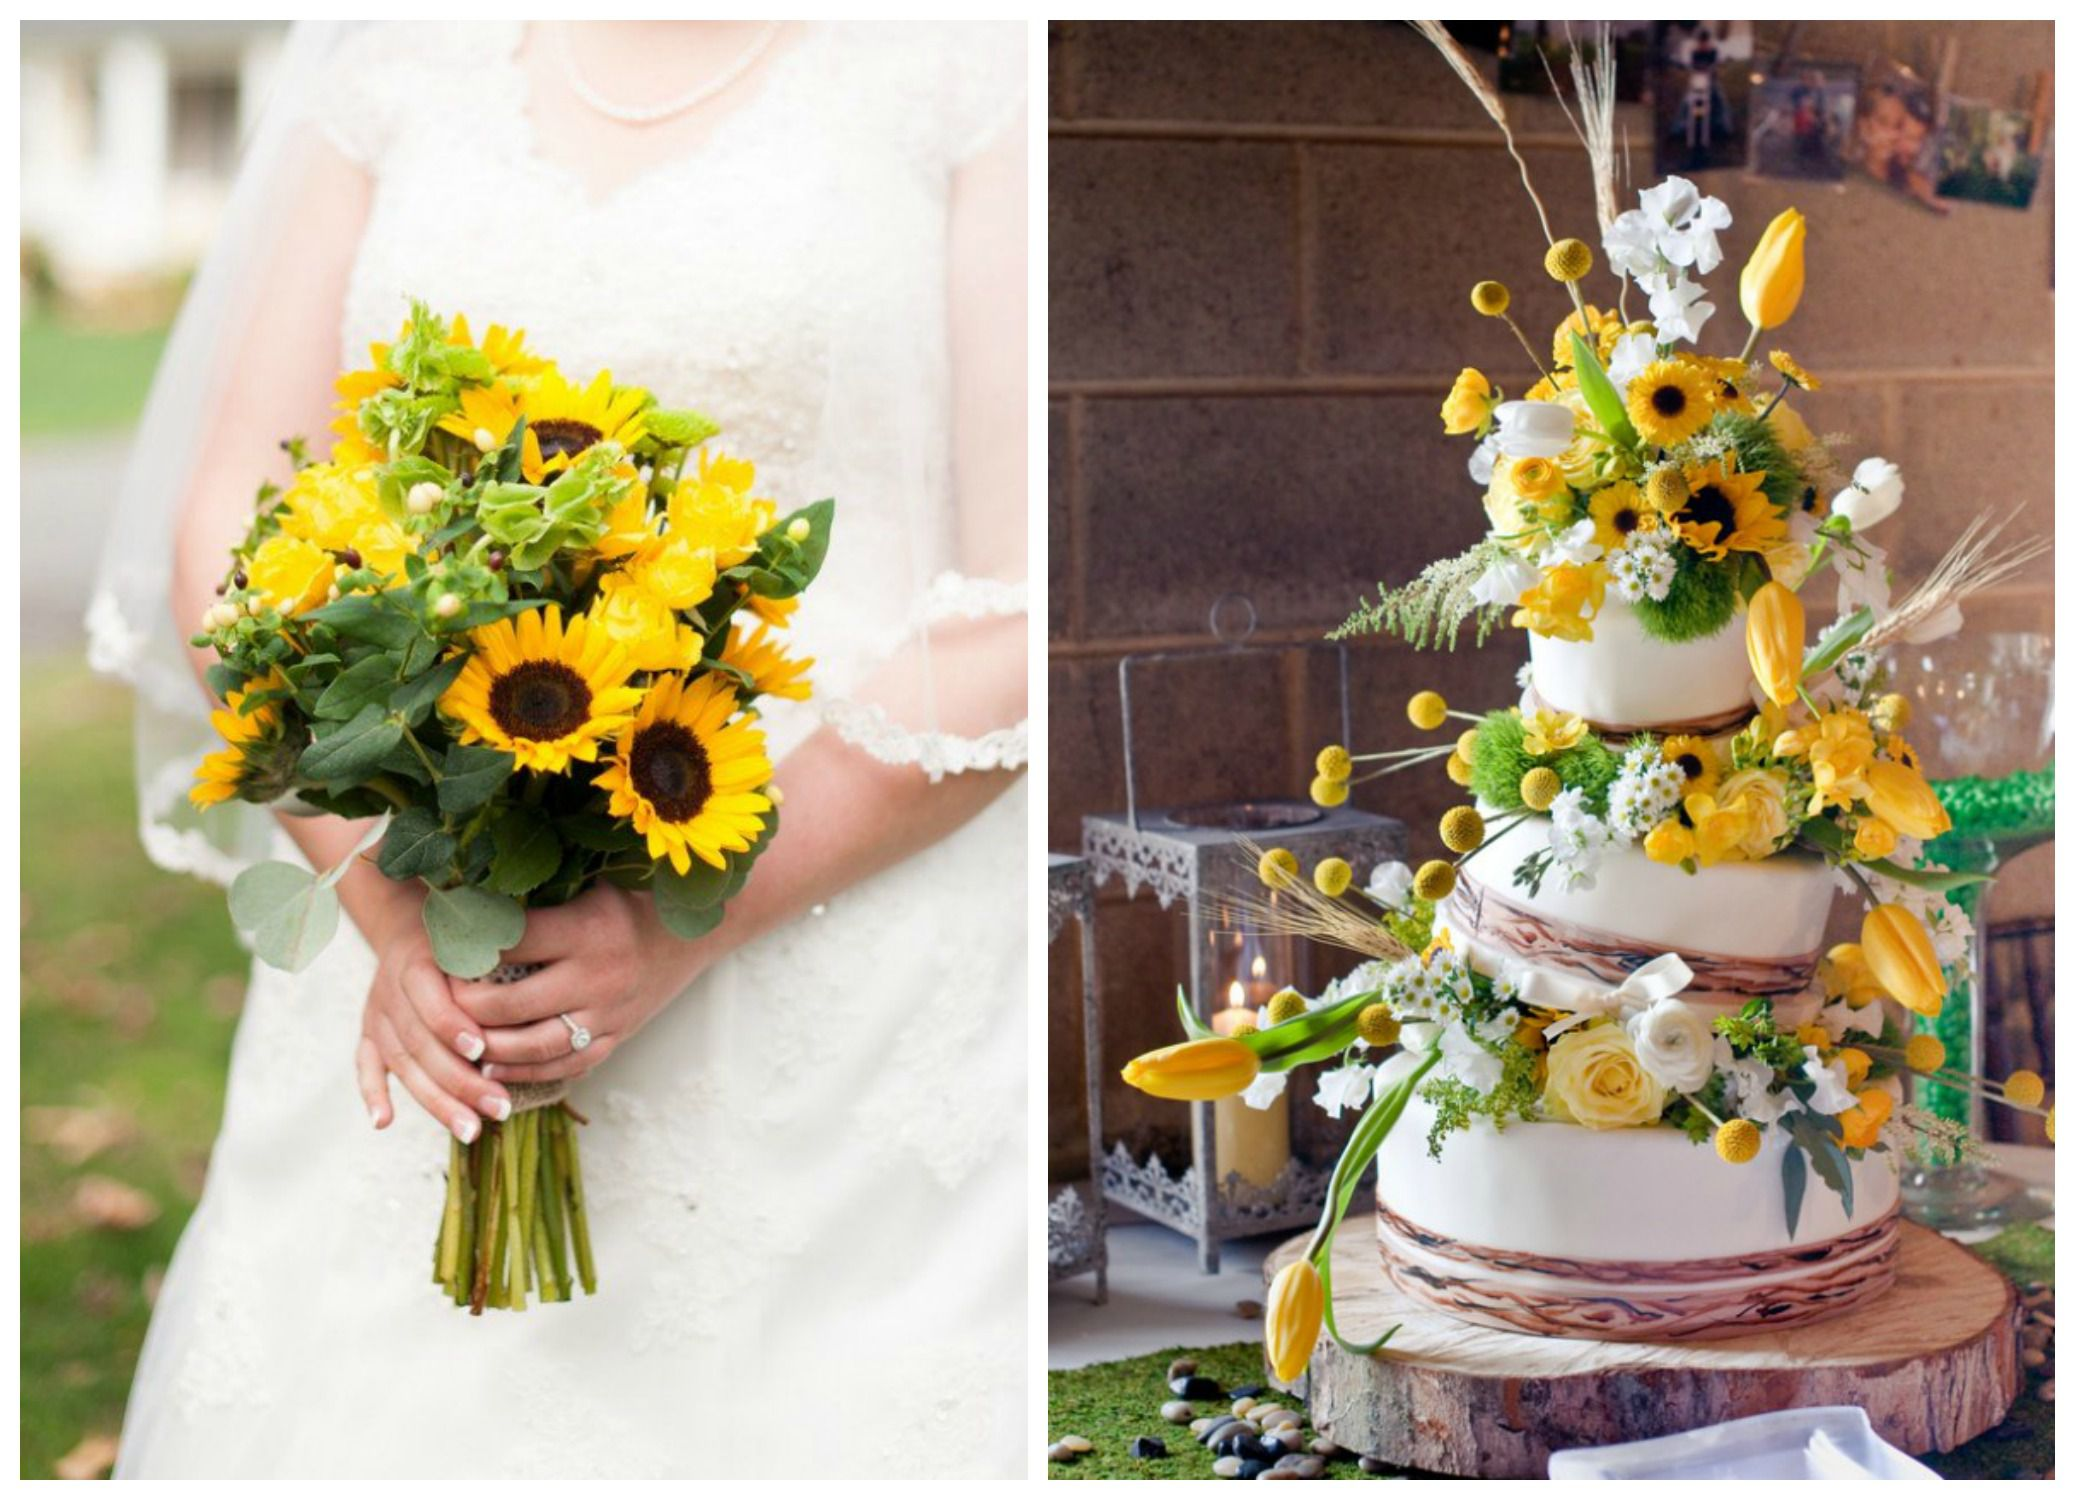 Sunflower Wedding Color Inspiration - Rustic Wedding Chic Sunflower Wedding